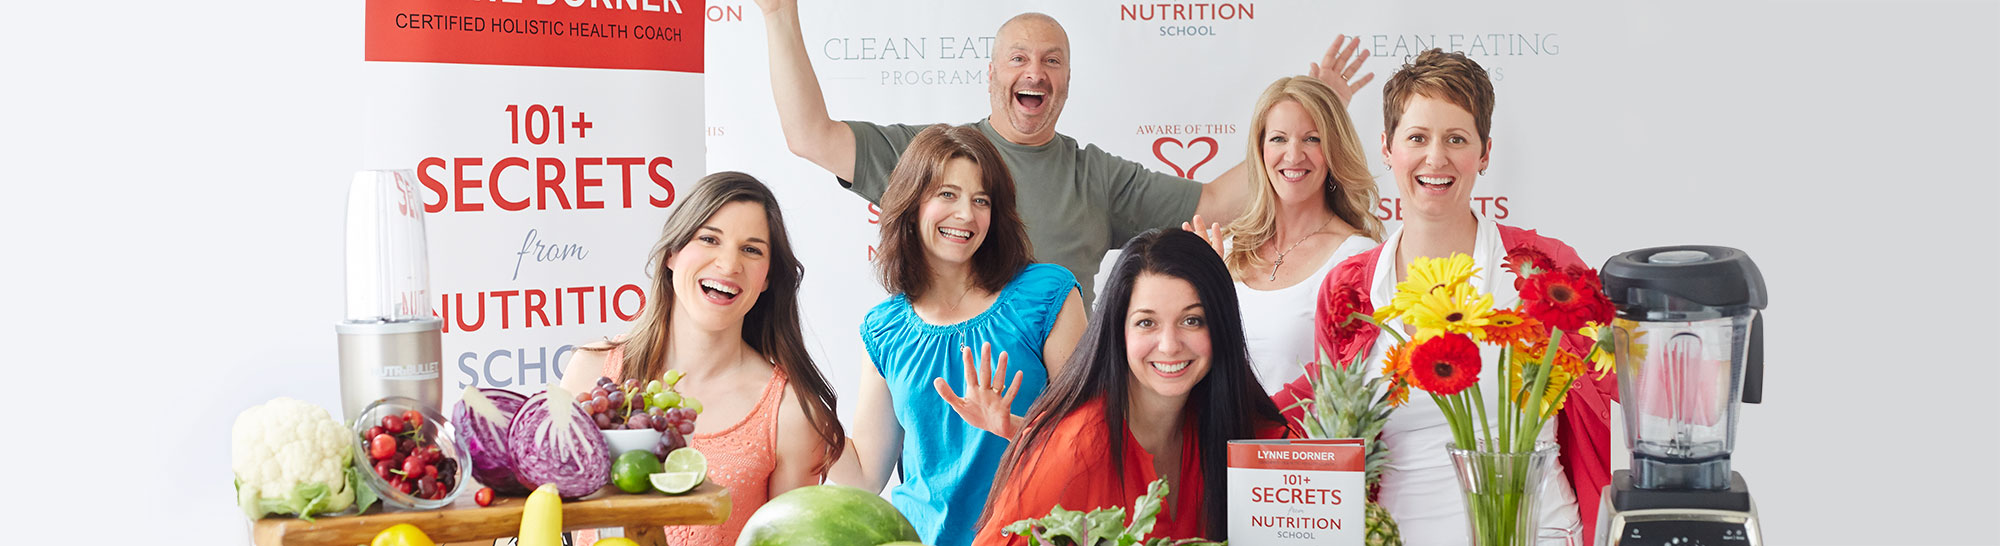 Clean Eating Programs | Summer 2015 Team | Lynne Dorner